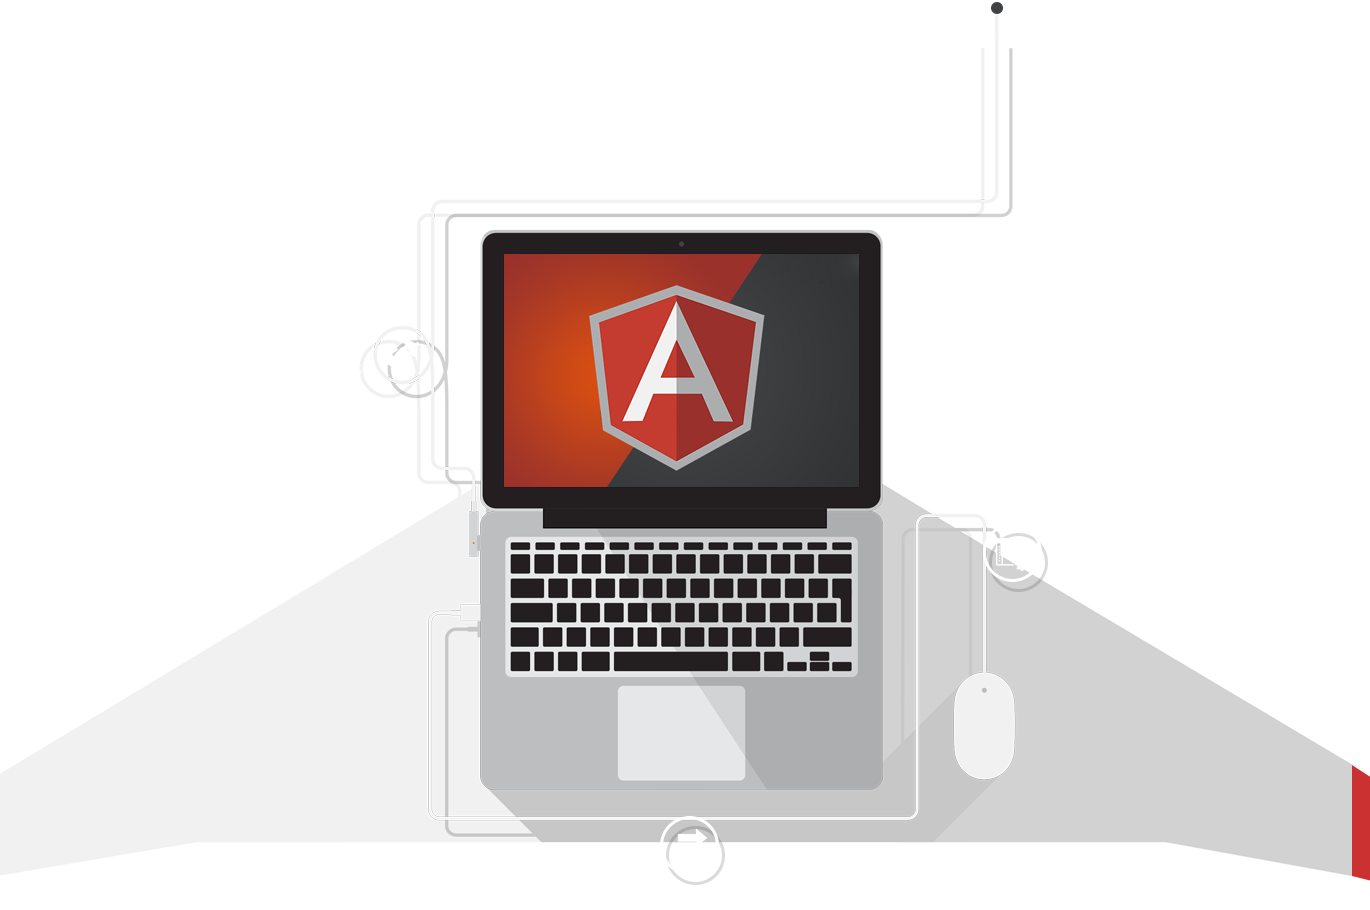 AngularJS Development Features